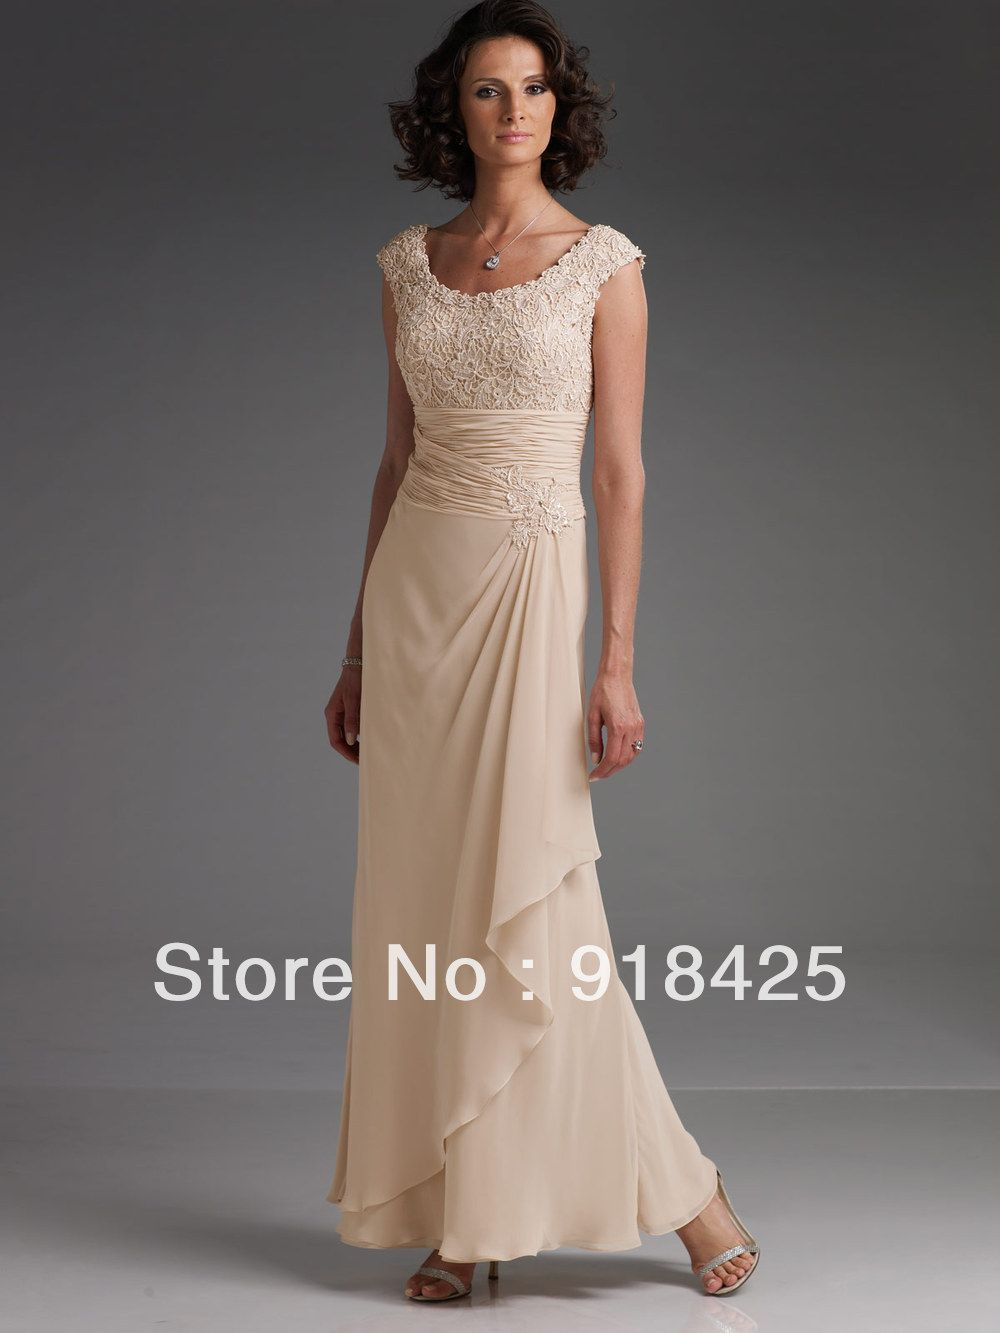 Fashion Ankle Length Maxi Champagne Lace Chiffon Mother Of The Bride Dresses C Summer Mother Of The Bride Dresses Mother Of The Bride Dresses Bride Groom Dress